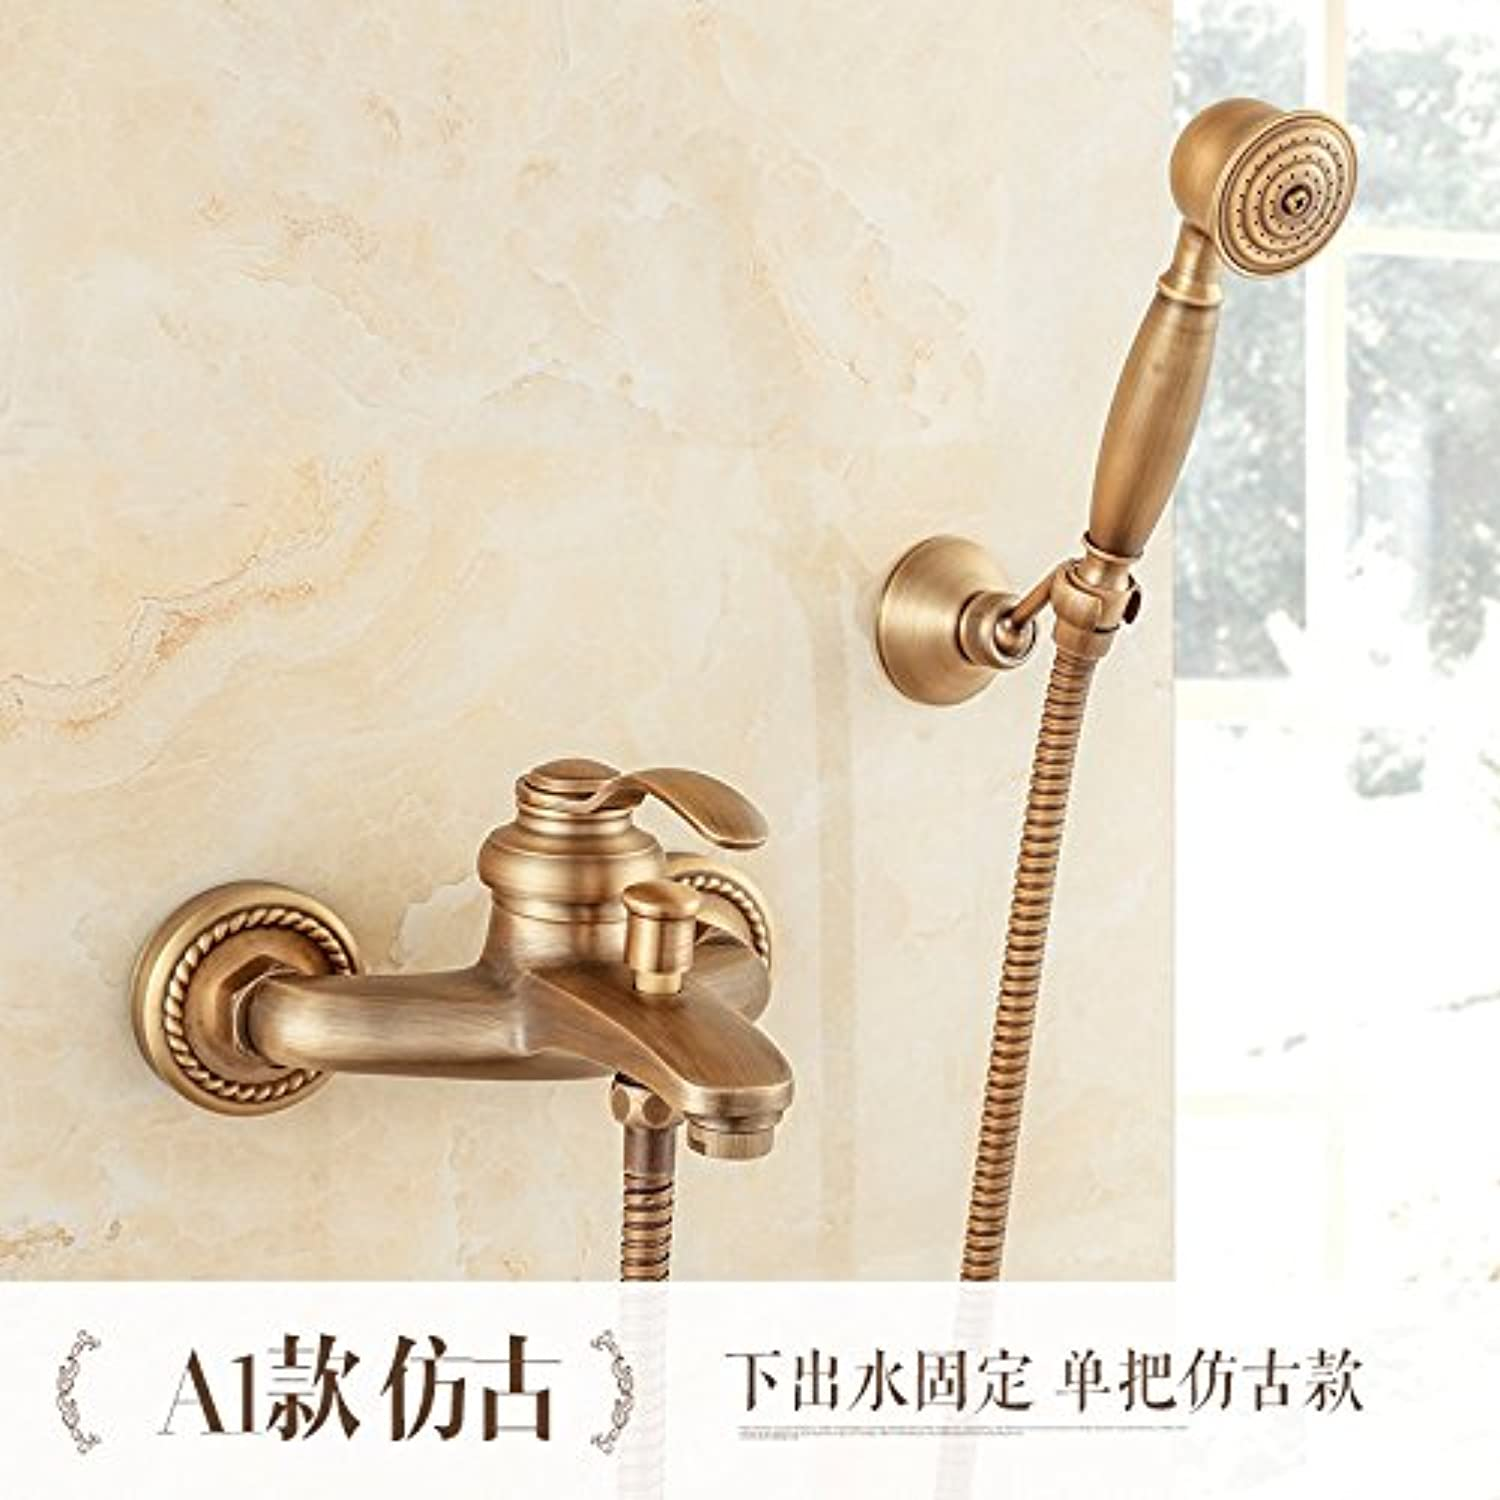 SADASD Modern Bathroom sink faucet Copper Natural Jade gold Waterfall gold-Plated Single Hole Single Handle Hot and Cold Water Ceramic Valve Core Tap With G1 2 Stainless Steel Hose